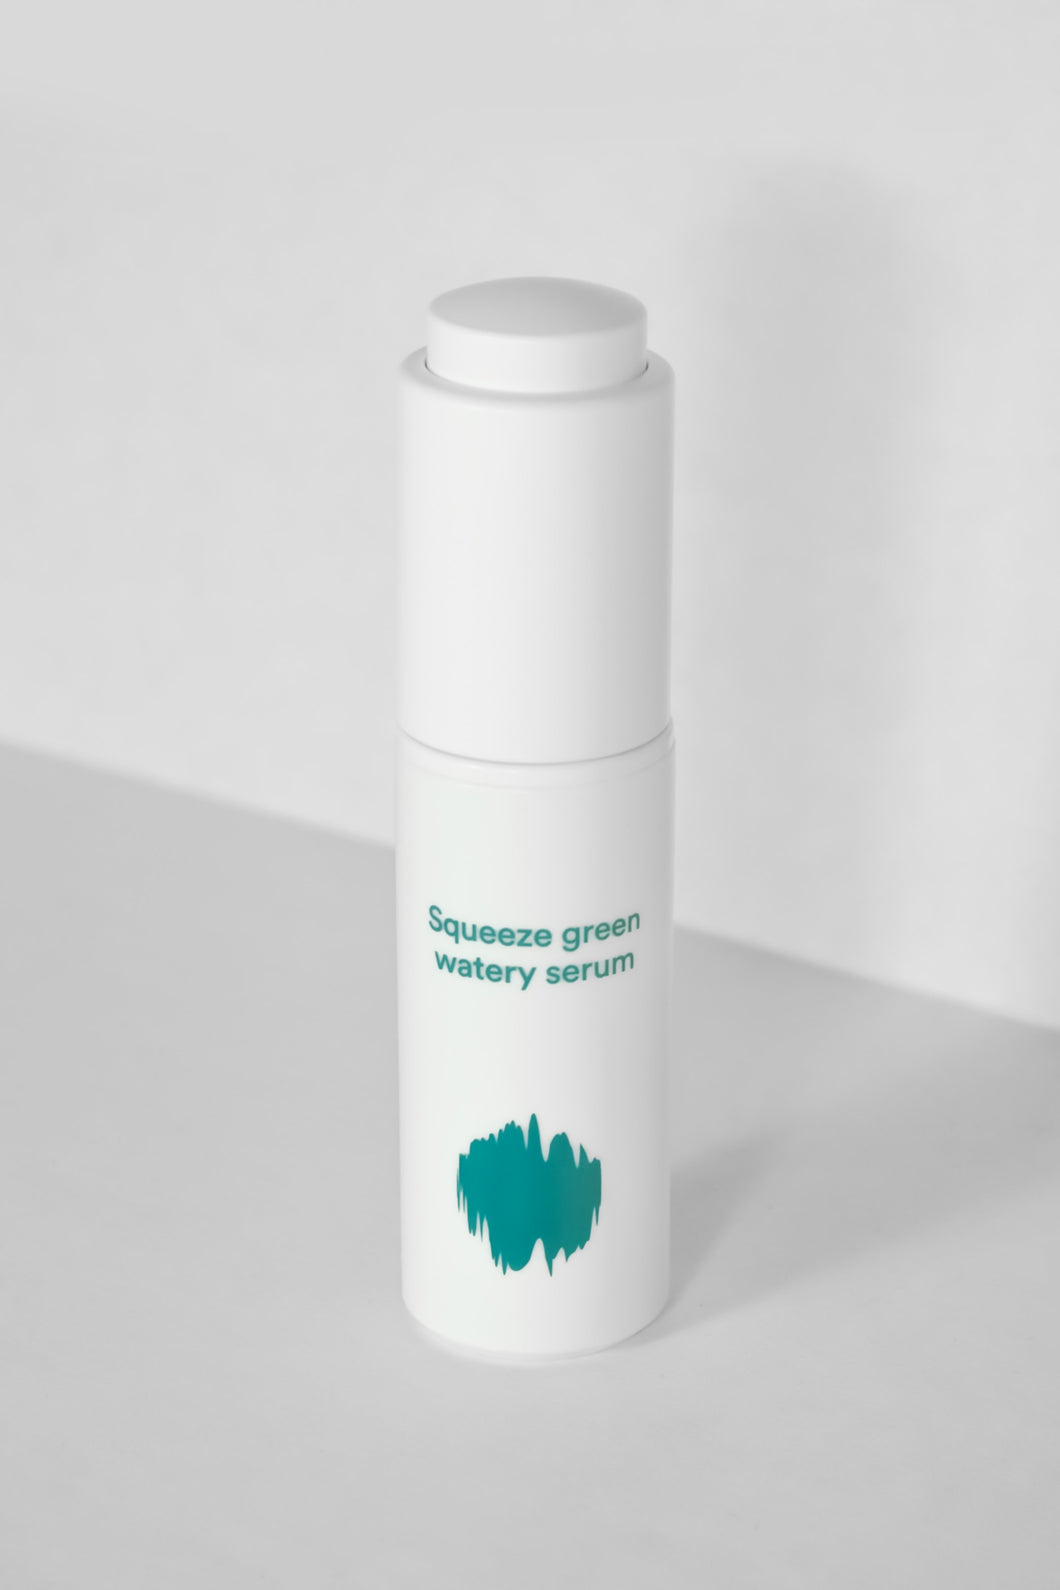 Squeeze Green Watery Serum